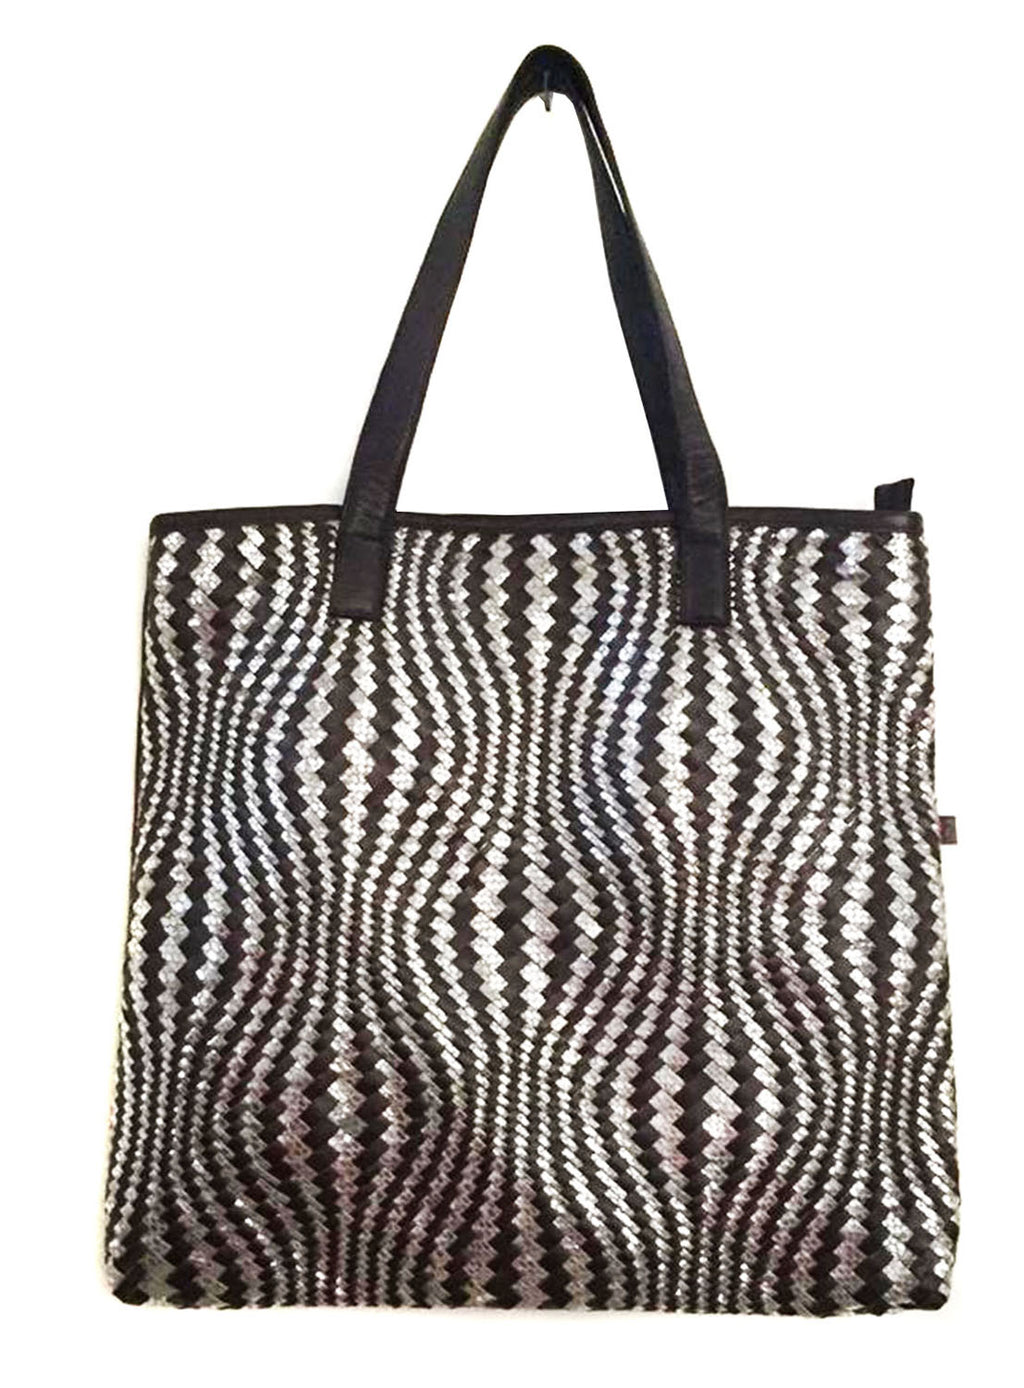 Hotseller  Woman Leather Woven Metallic Tote Bag